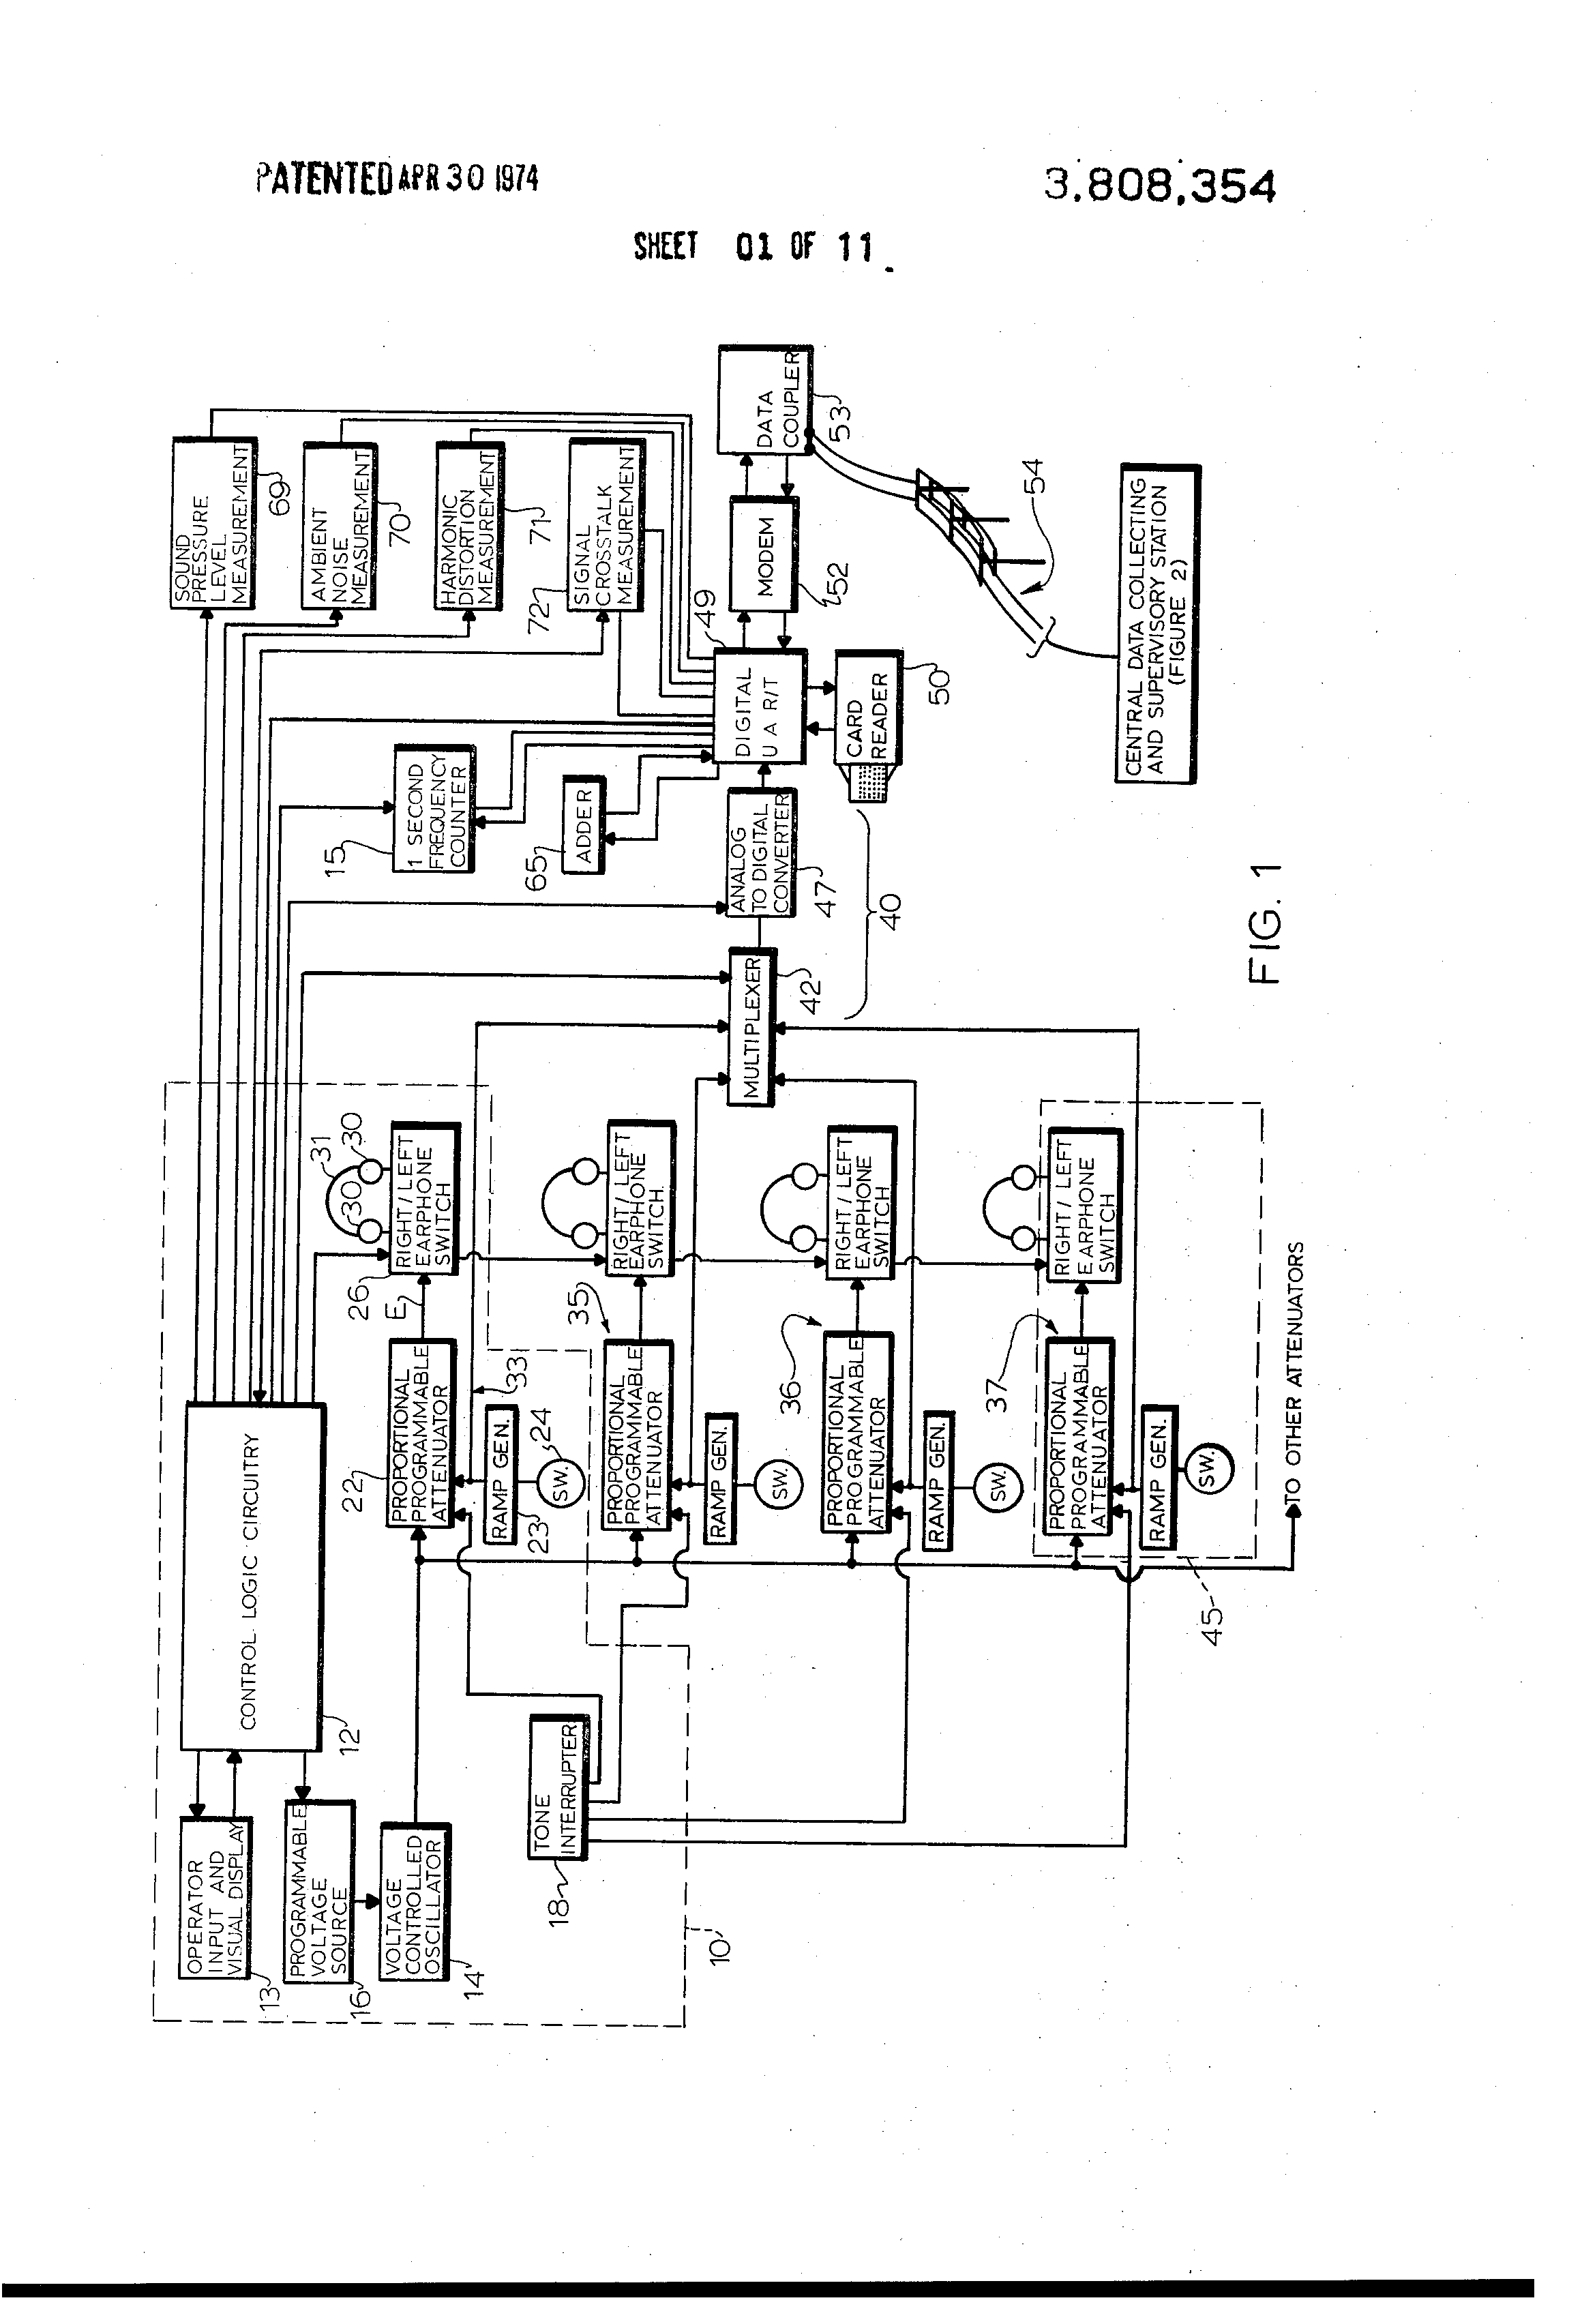 True Wiring Diagrams Trusted Bonn Commercial Freezer Diagram Gdm 23f Block And Schematic U2022 Snatch